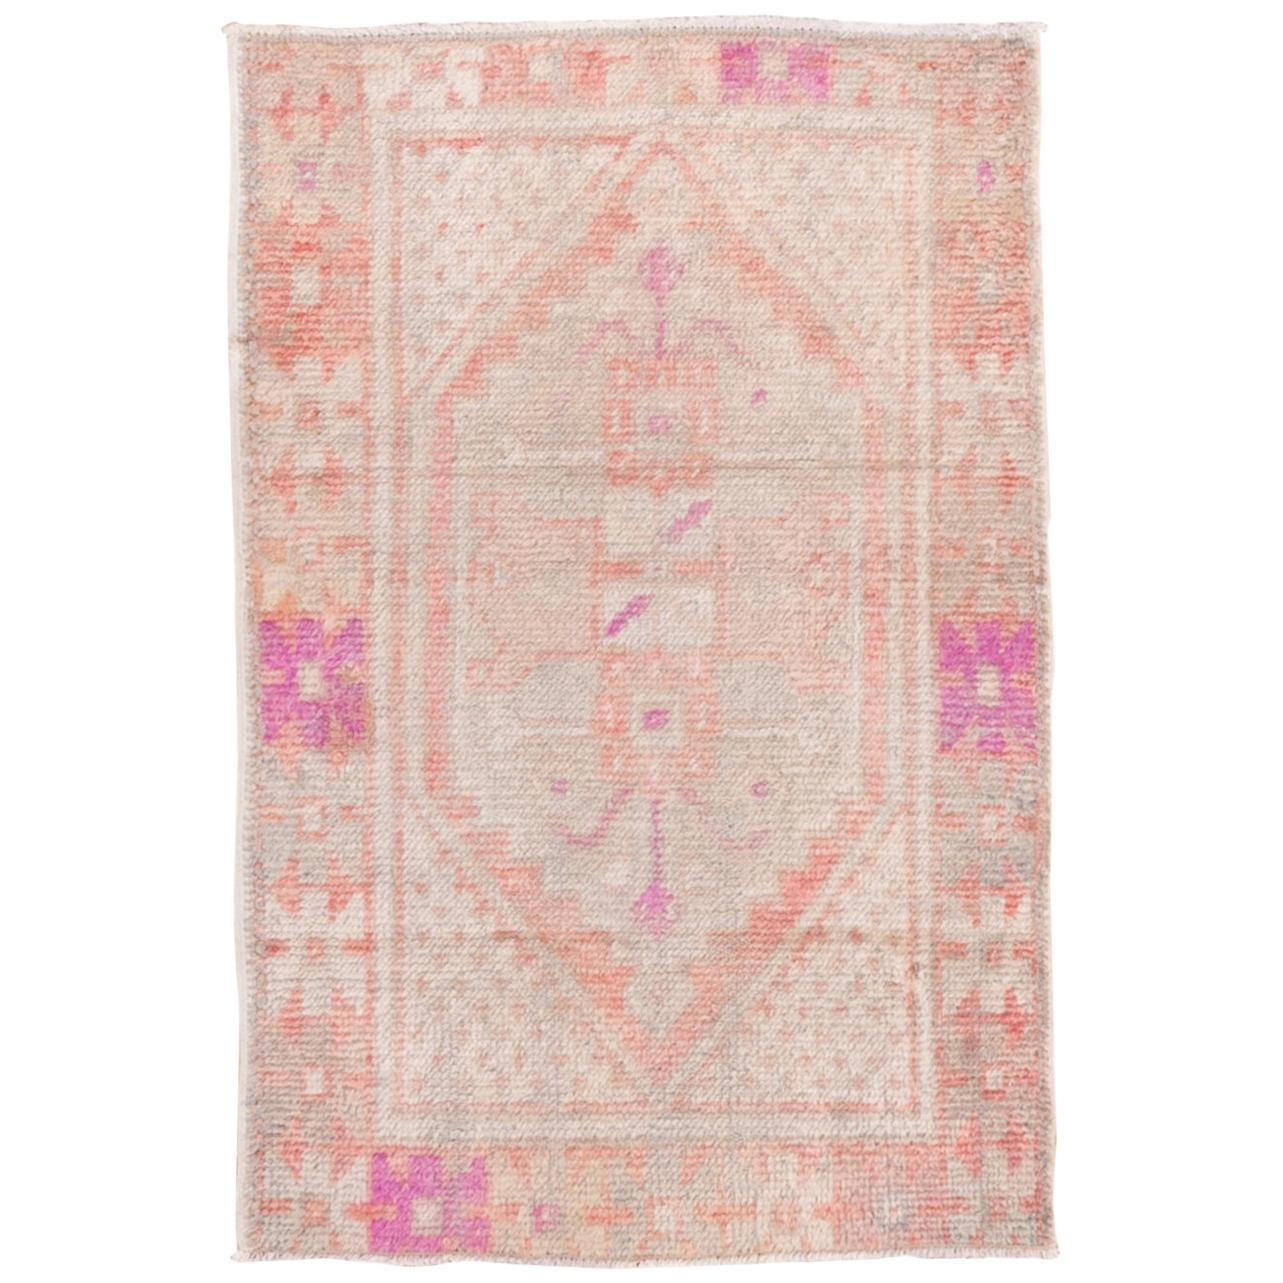 Vintage Turkish Oushak Scatter Rug, Coral and Ivory Field, Pink Accents